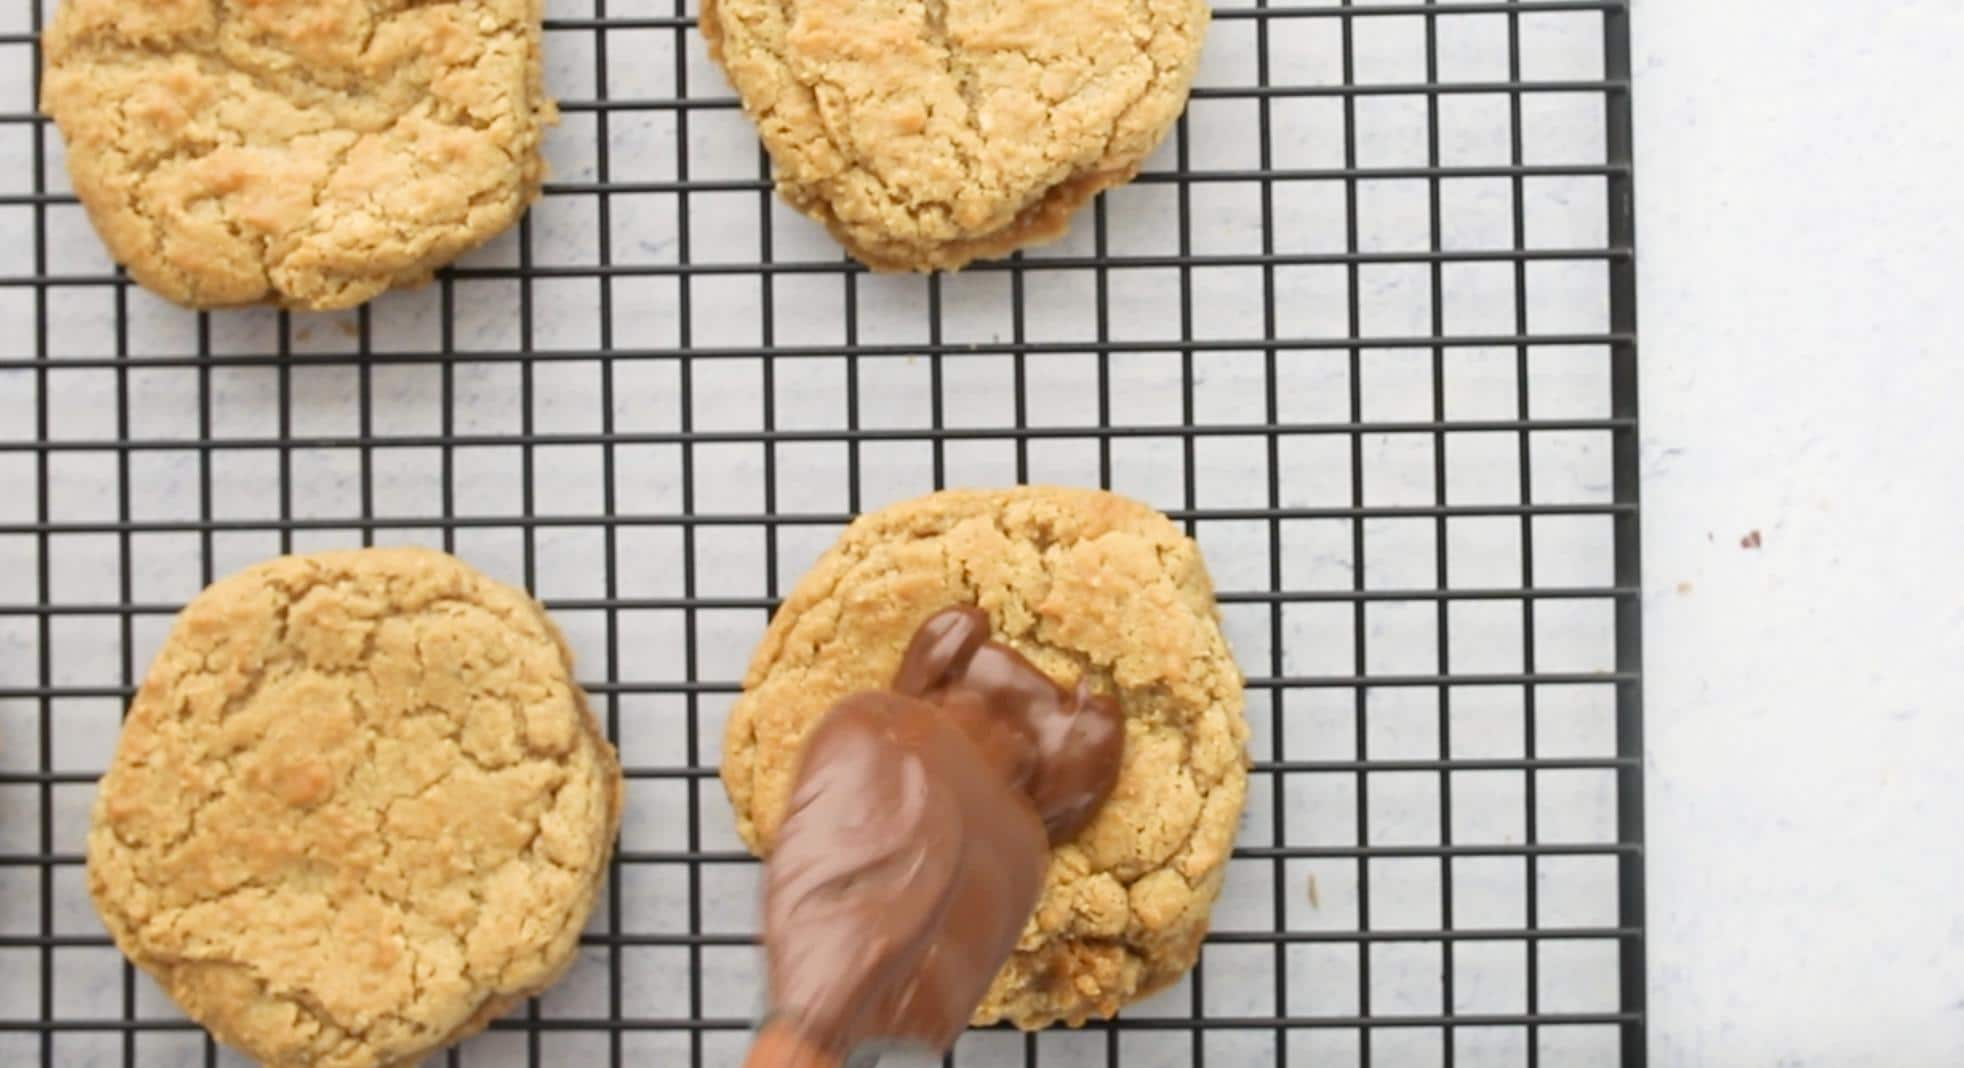 Adding a dollop of chocolate to a peanut butter cookie